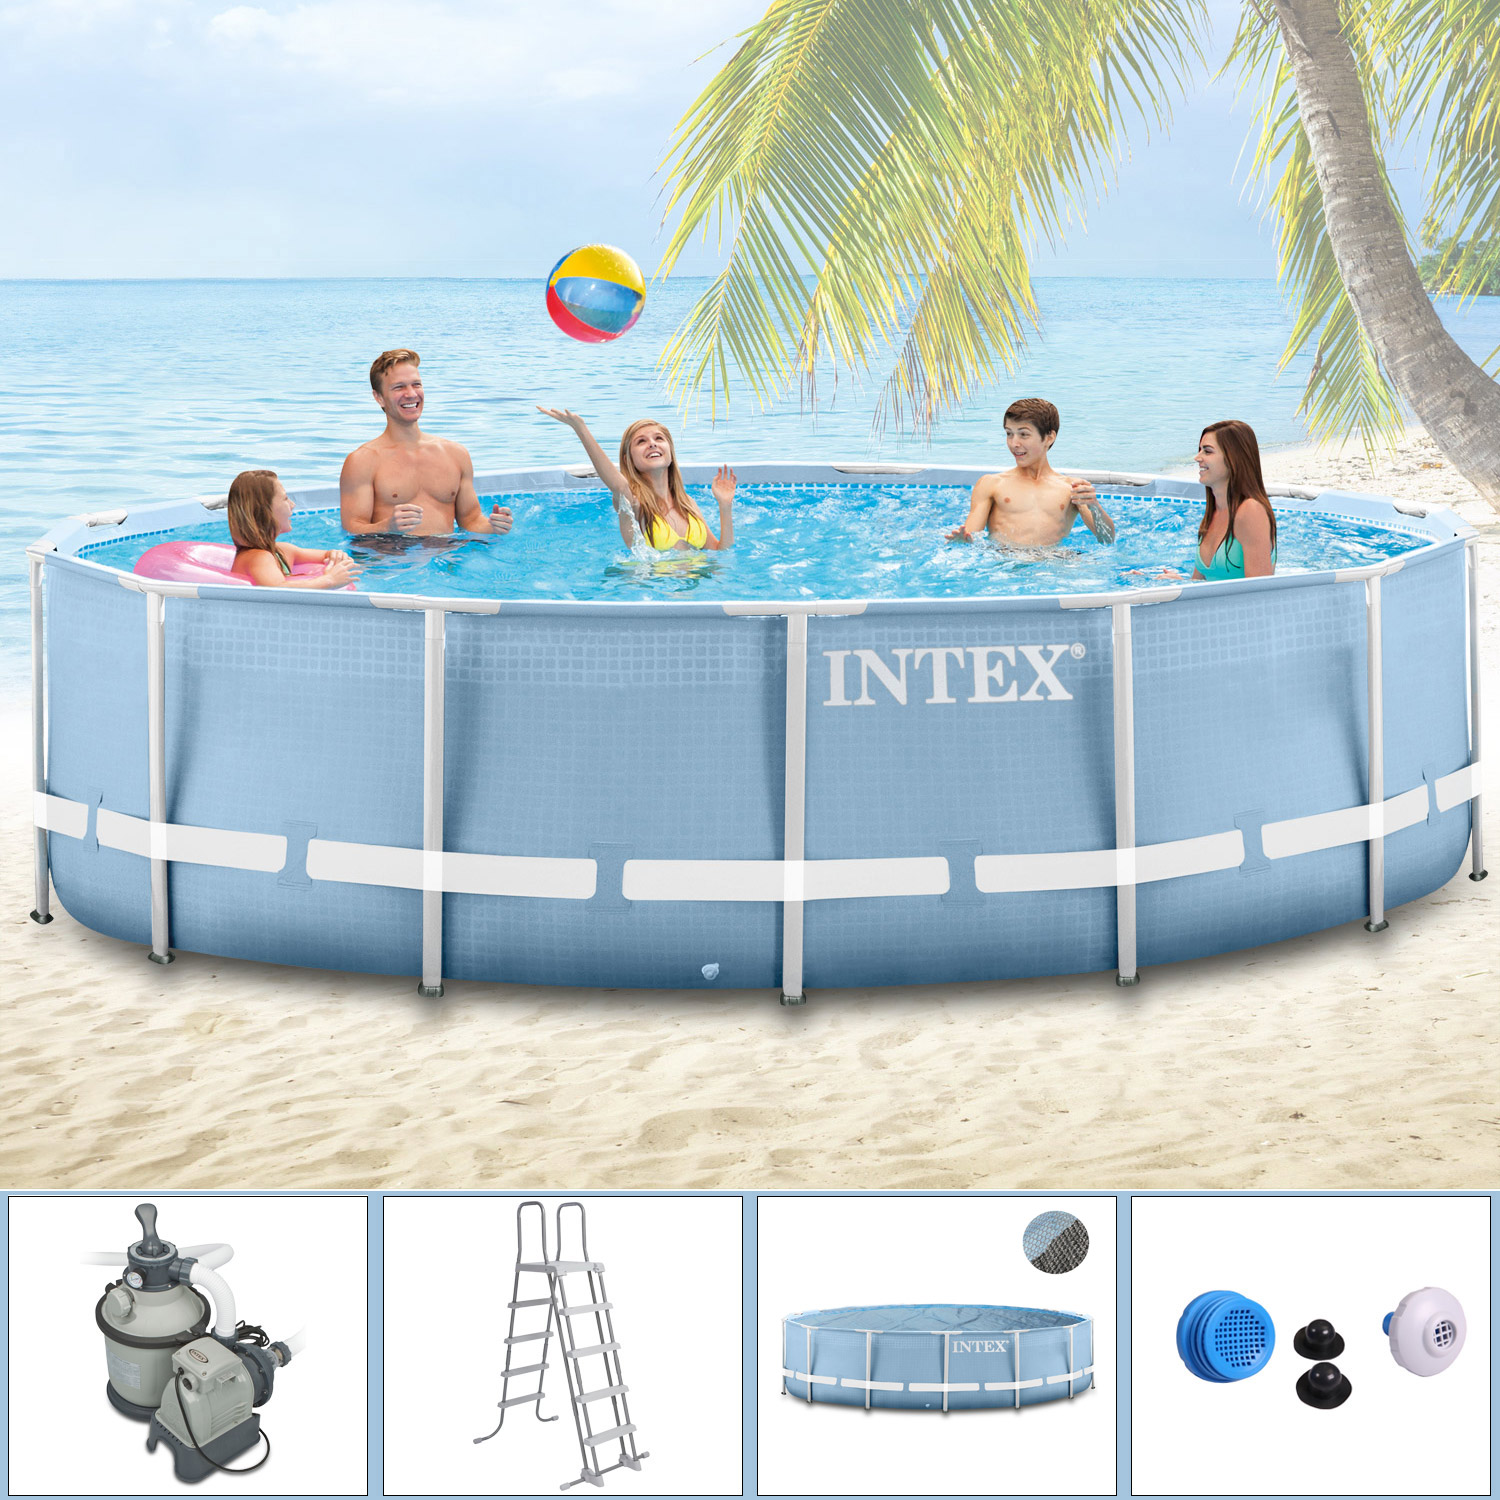 intex 366x122 komplettset swimming pool schwimmbad frame. Black Bedroom Furniture Sets. Home Design Ideas